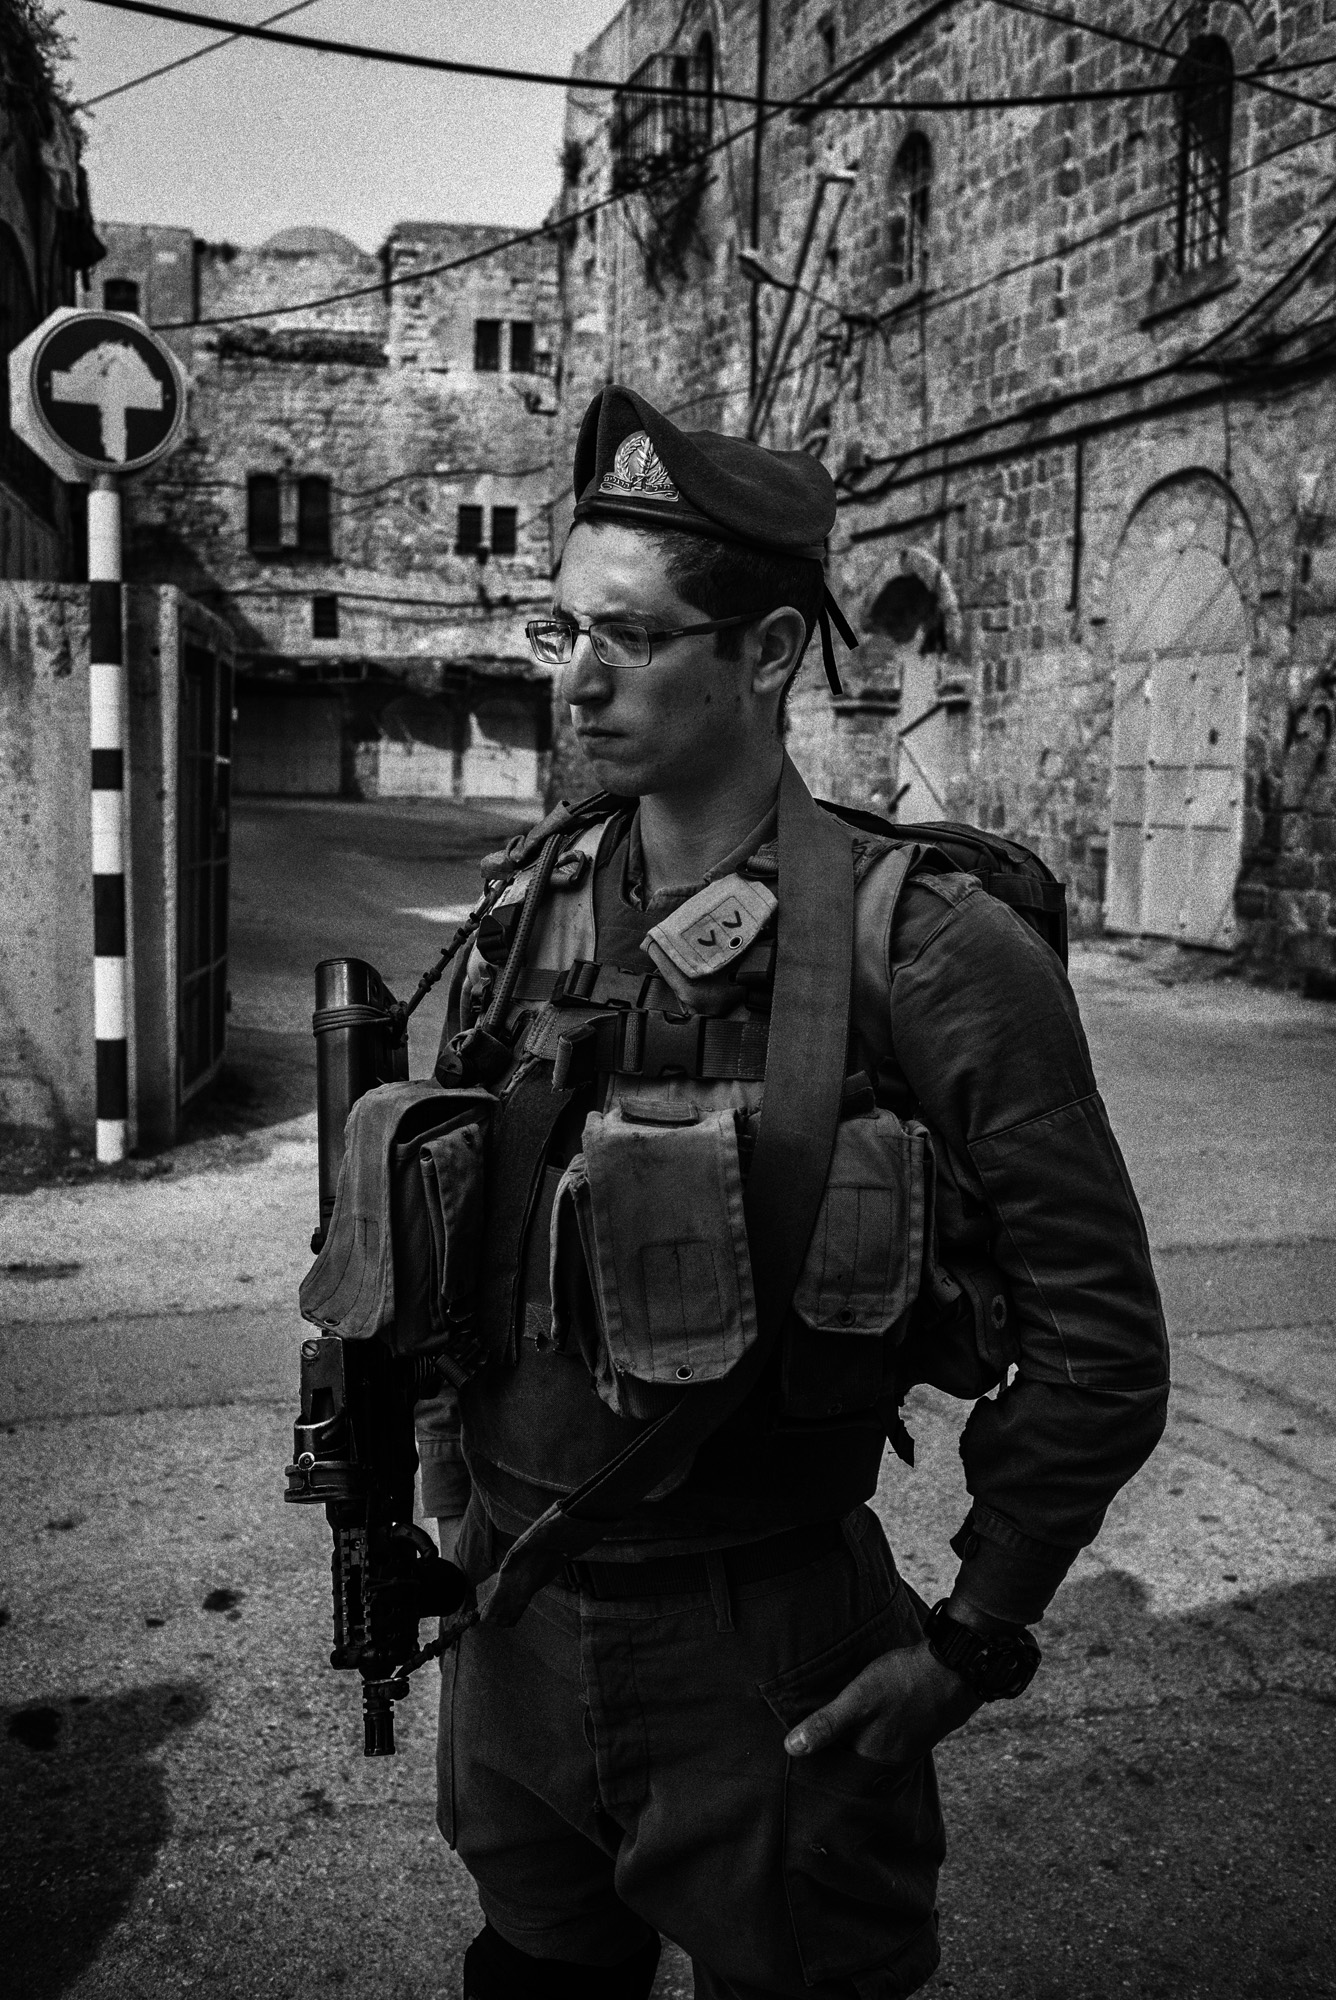 An Israeli soldier stands at a checkpoint in the H2 area of Hebron, November 2015. In late October a Palestinian man was fatally shot here while. Amnesty International said he was retrieving an ID card at the request of a soldier. The rights organization said Israeli authorities labeled the incident an  attempted stabbing.